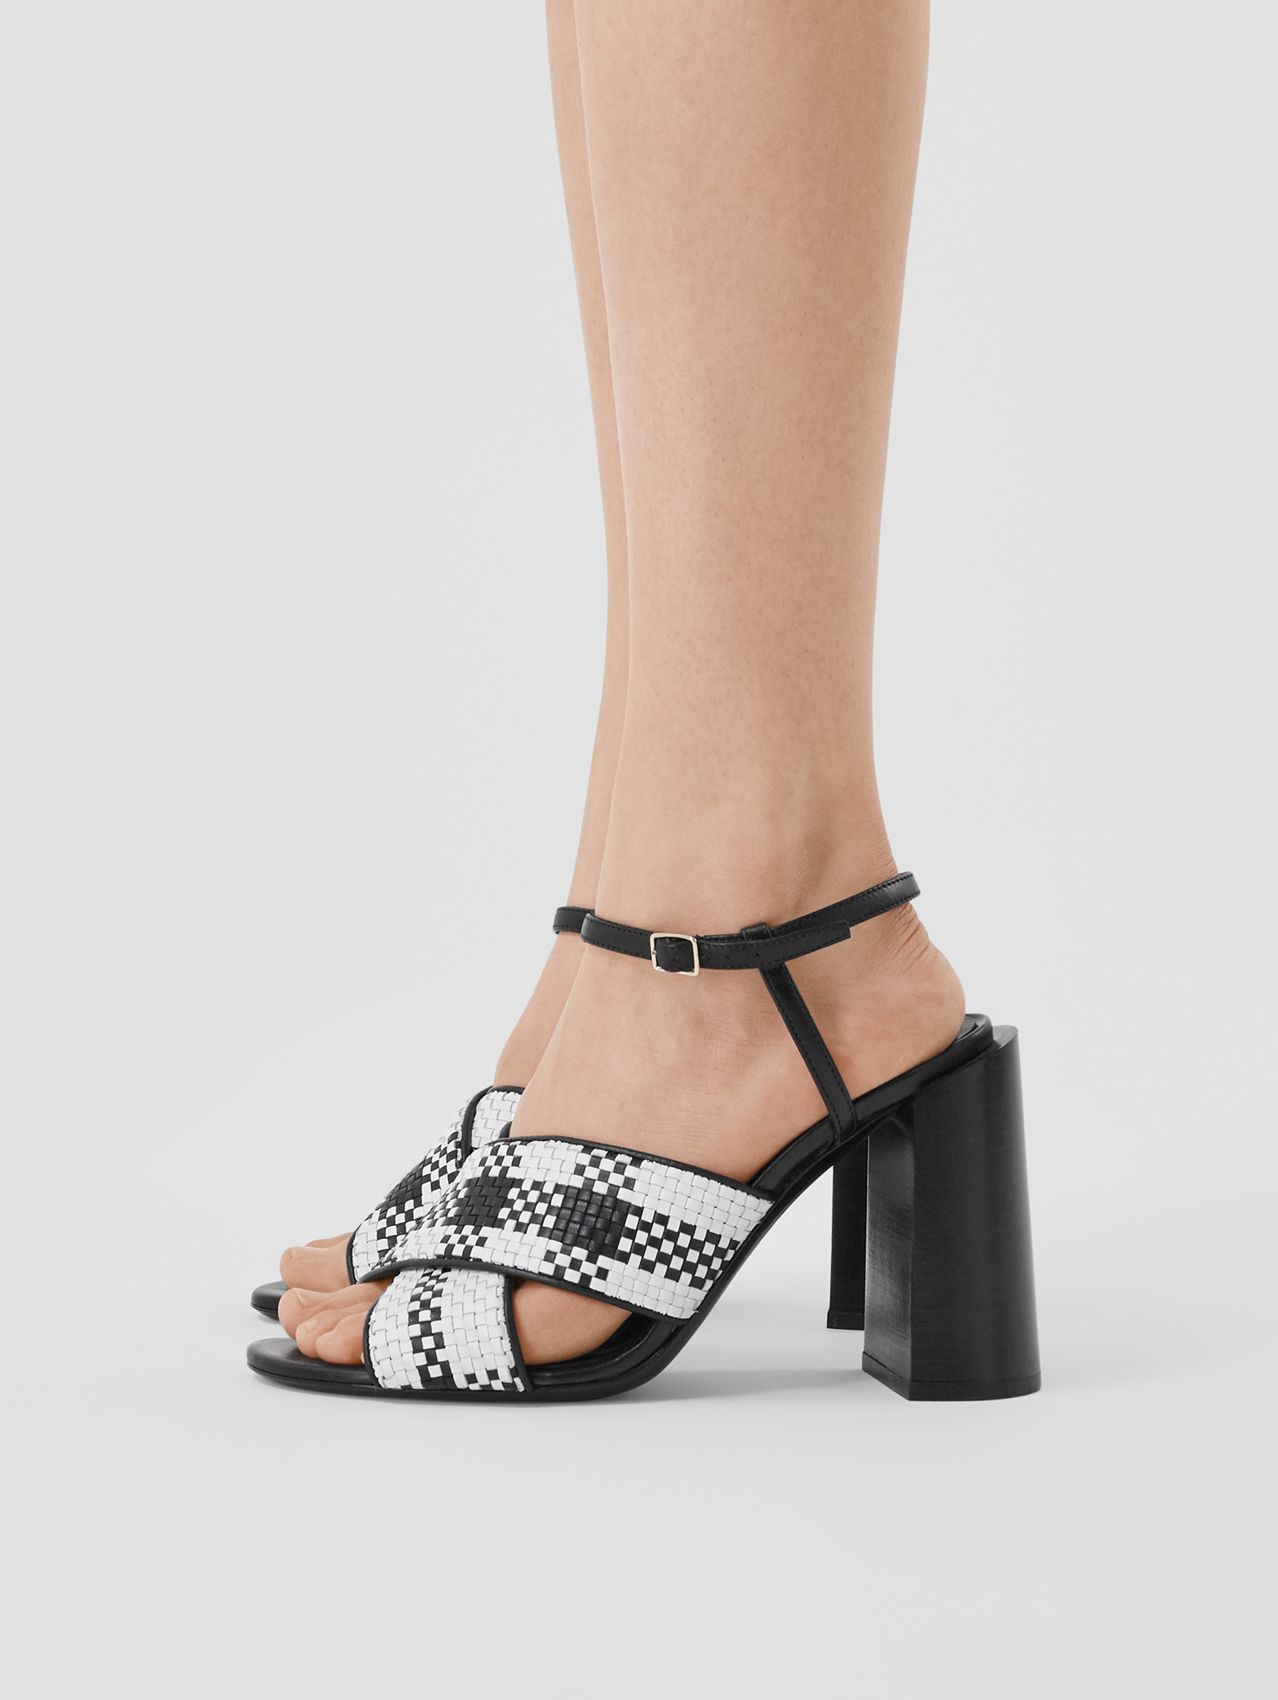 Latticed Leather Block-heel Sandals (Black/white)